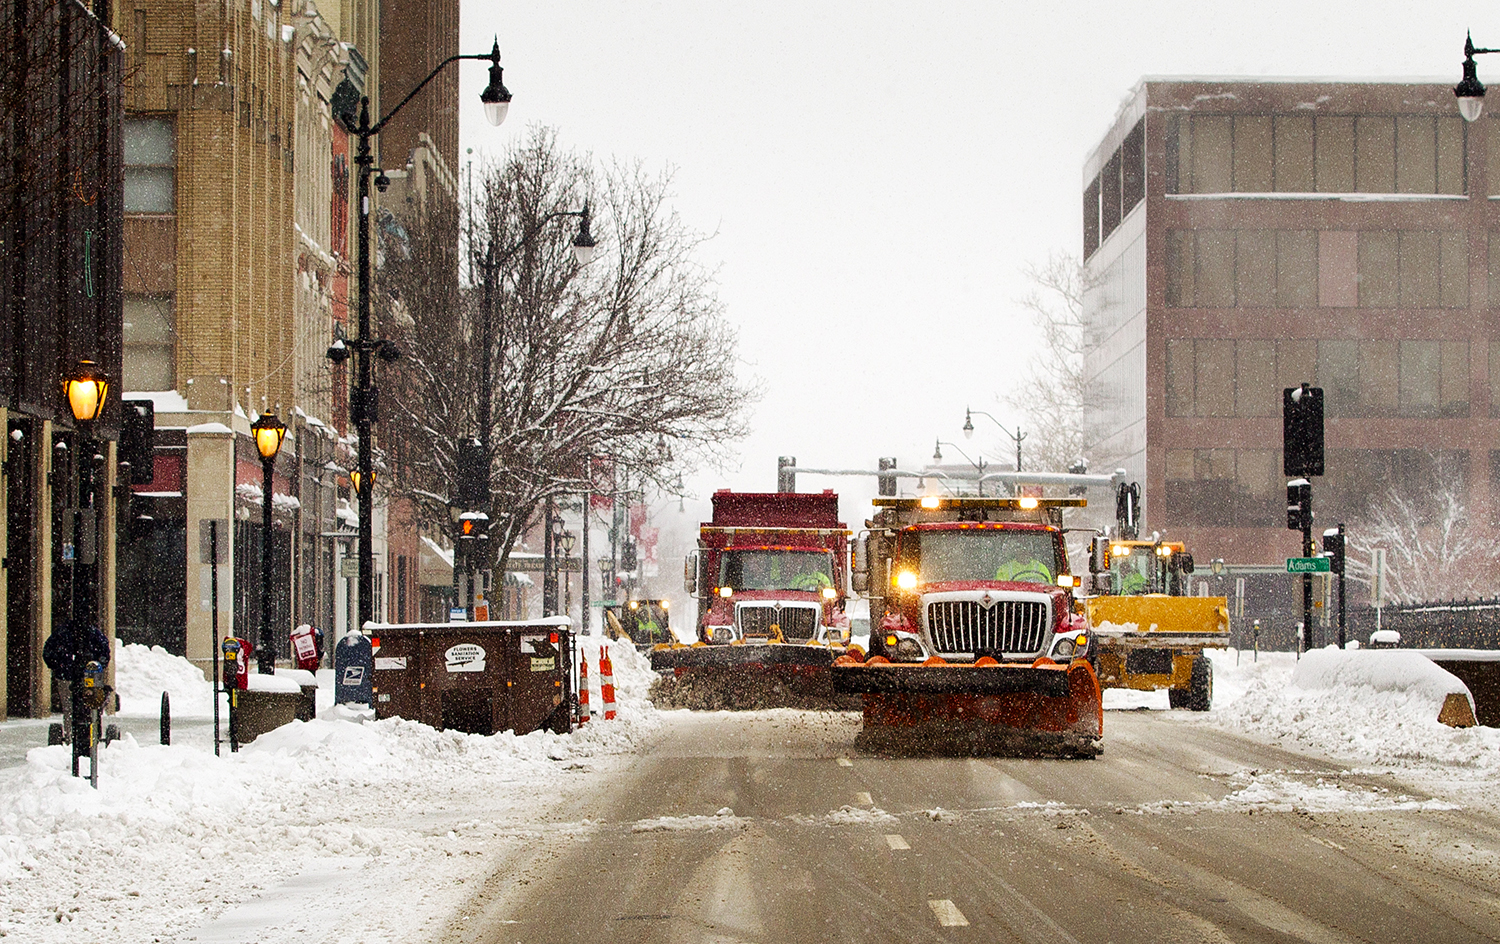 City workers plow the streets in downtown Springfield as snow continues to fall Sunday, Jan. 13, 2019. [Ted Schurter/The State Journal-Register]